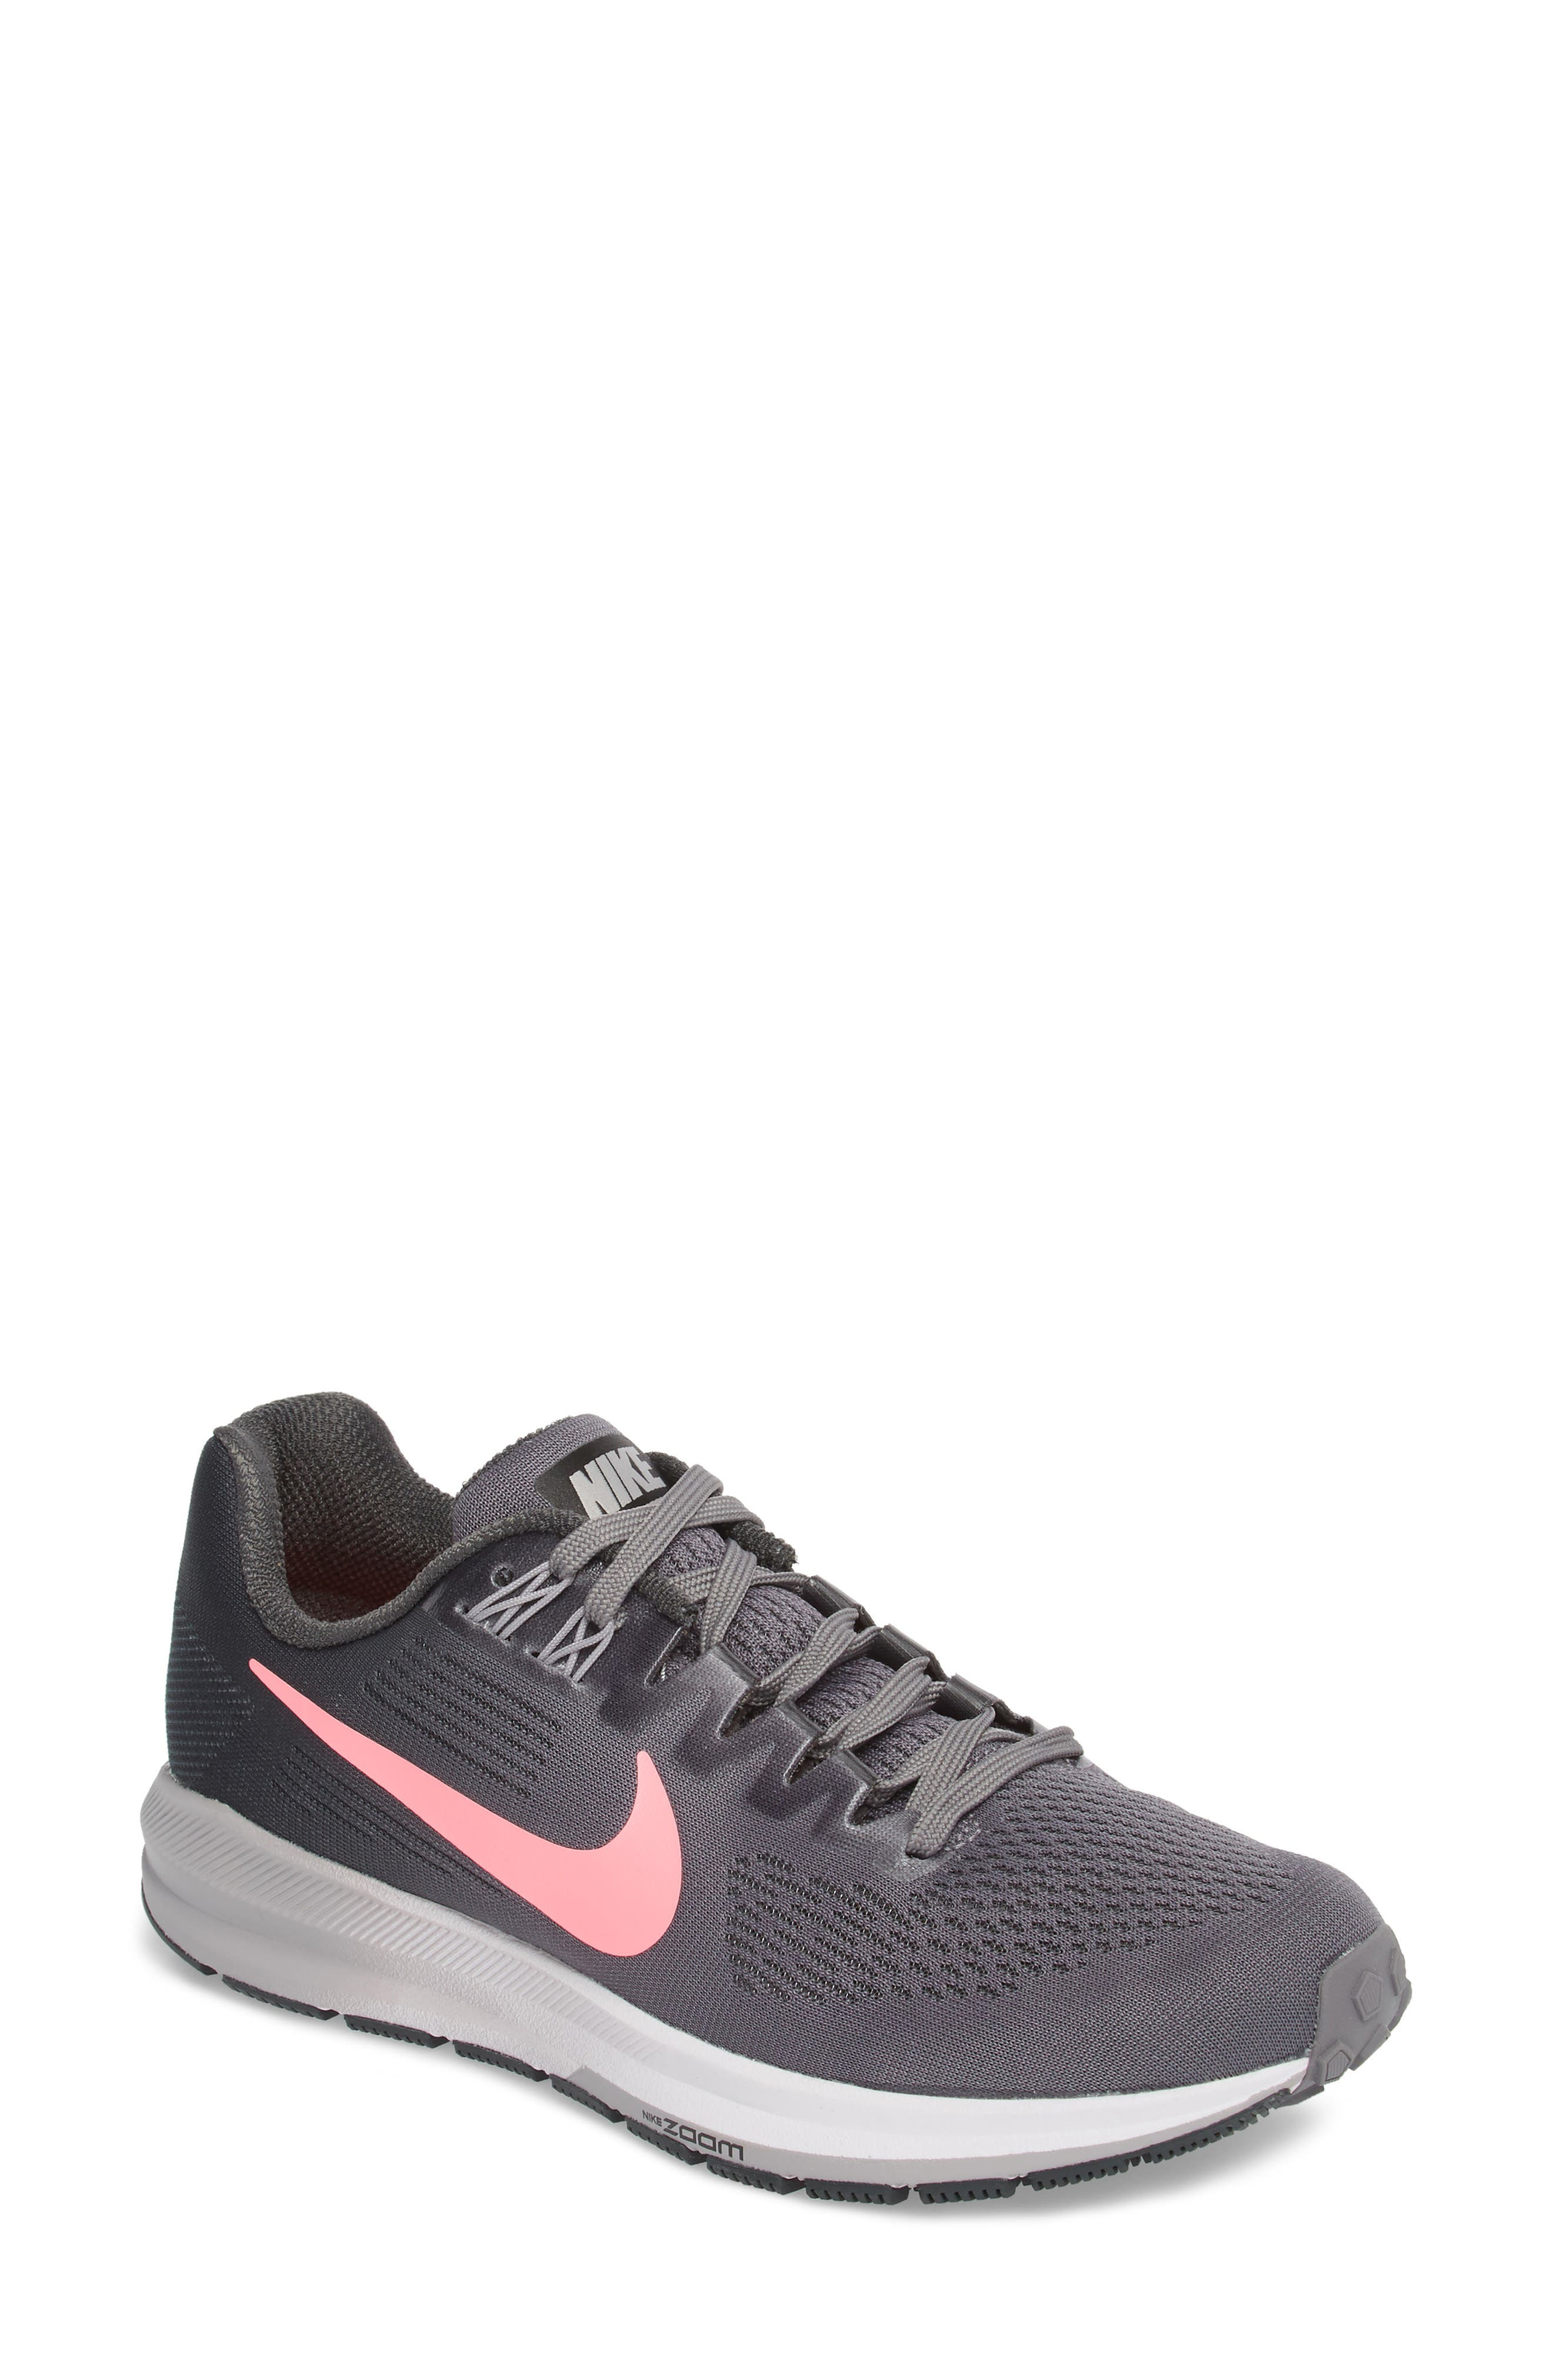 Alternate Image 1 Selected - Nike Air Zoom Structure 21 Running Shoe (Women)